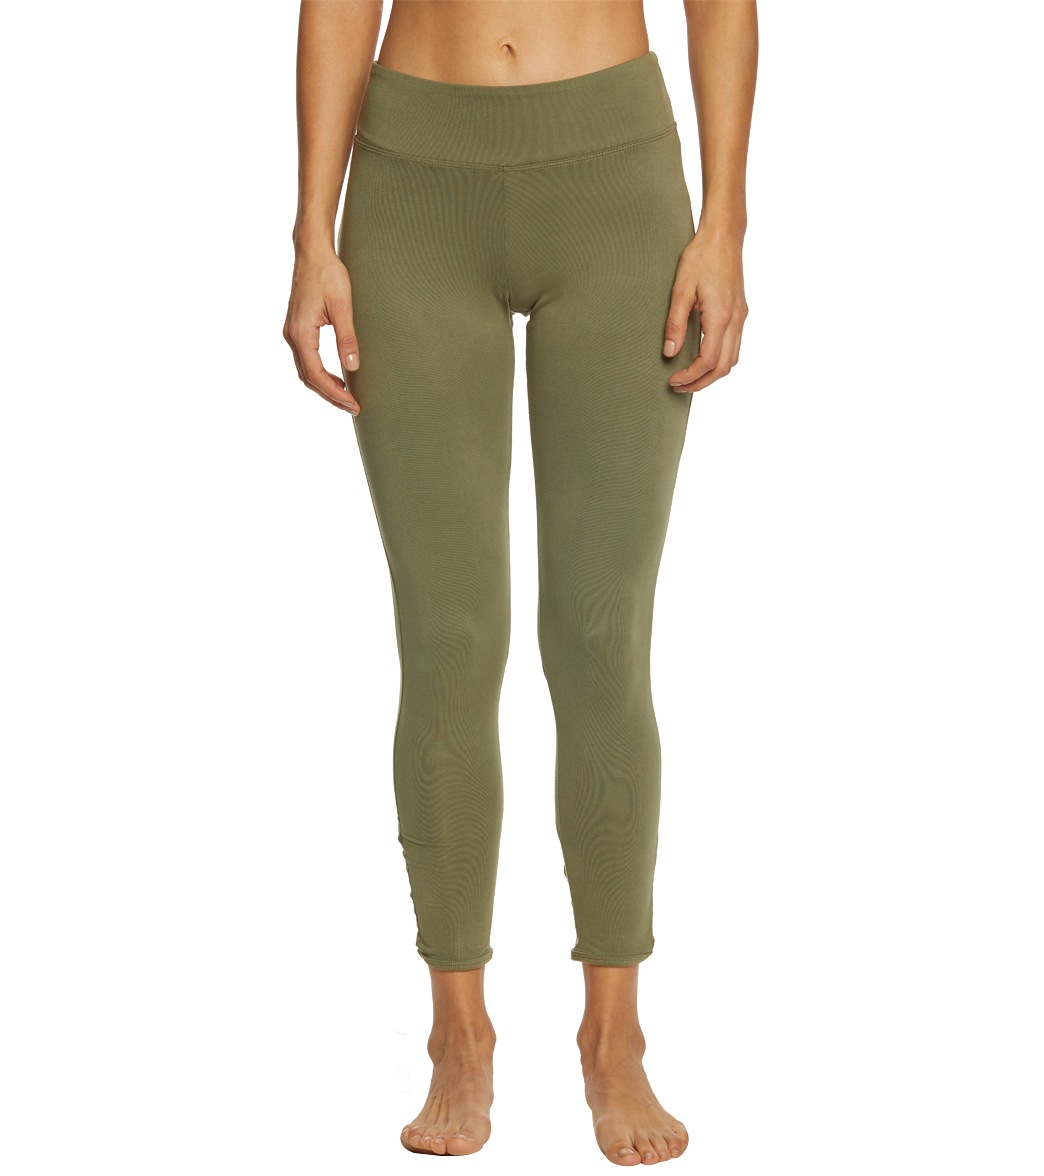 e1d85bee5e862 Balance Collection Perry Yoga Leggings at YogaOutlet.com - Free Shipping